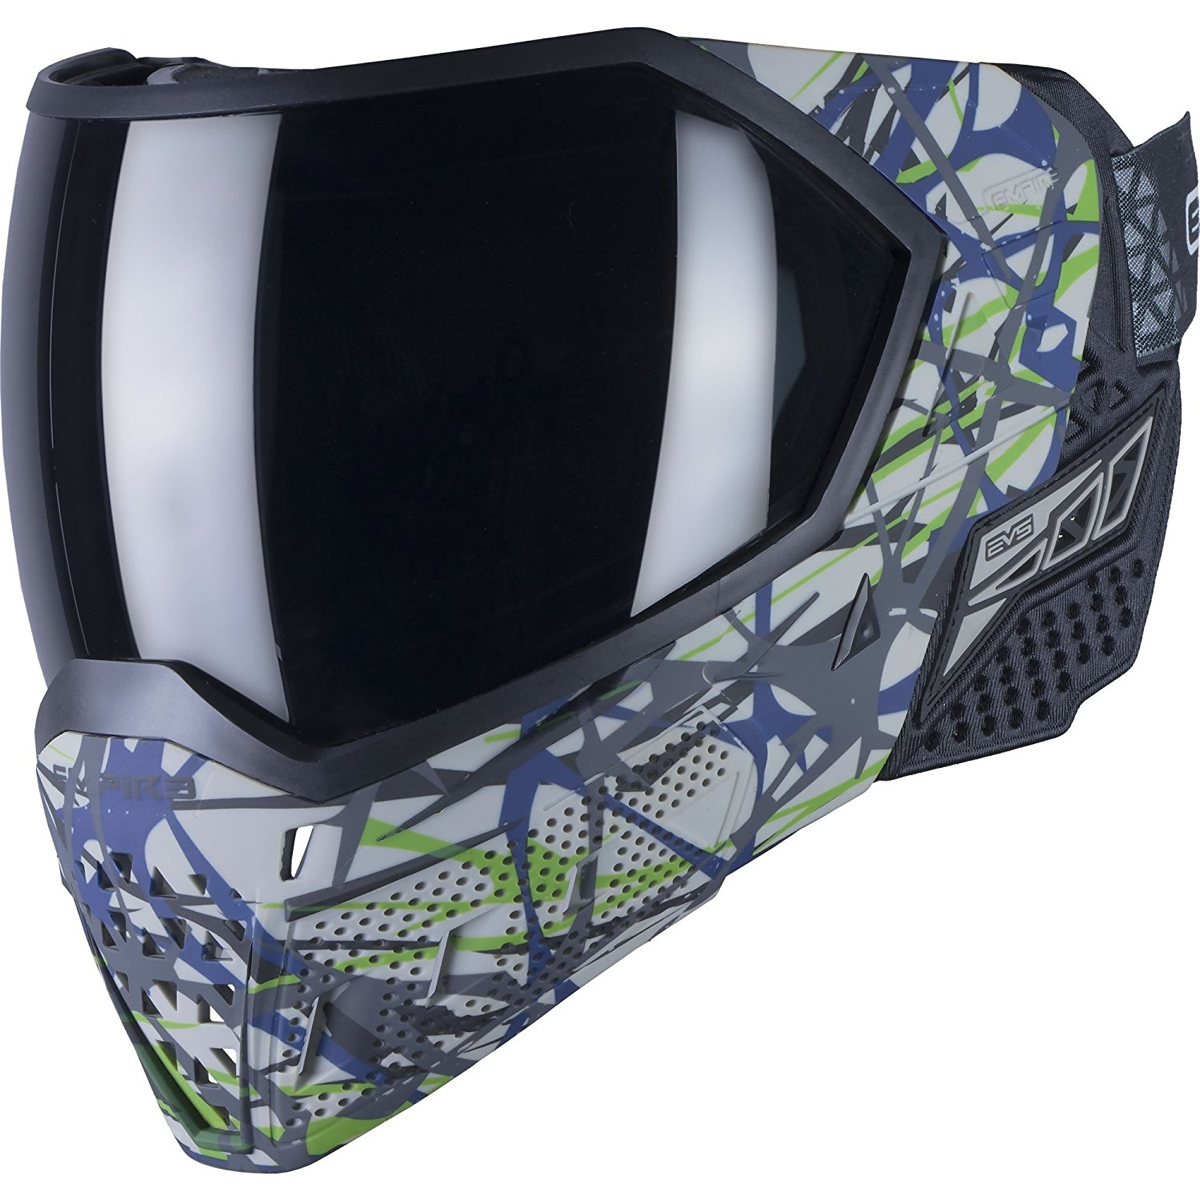 Empire EVS Thermal Paintball Mask Goggles - Thermal Ninja Lens - LE Thornz